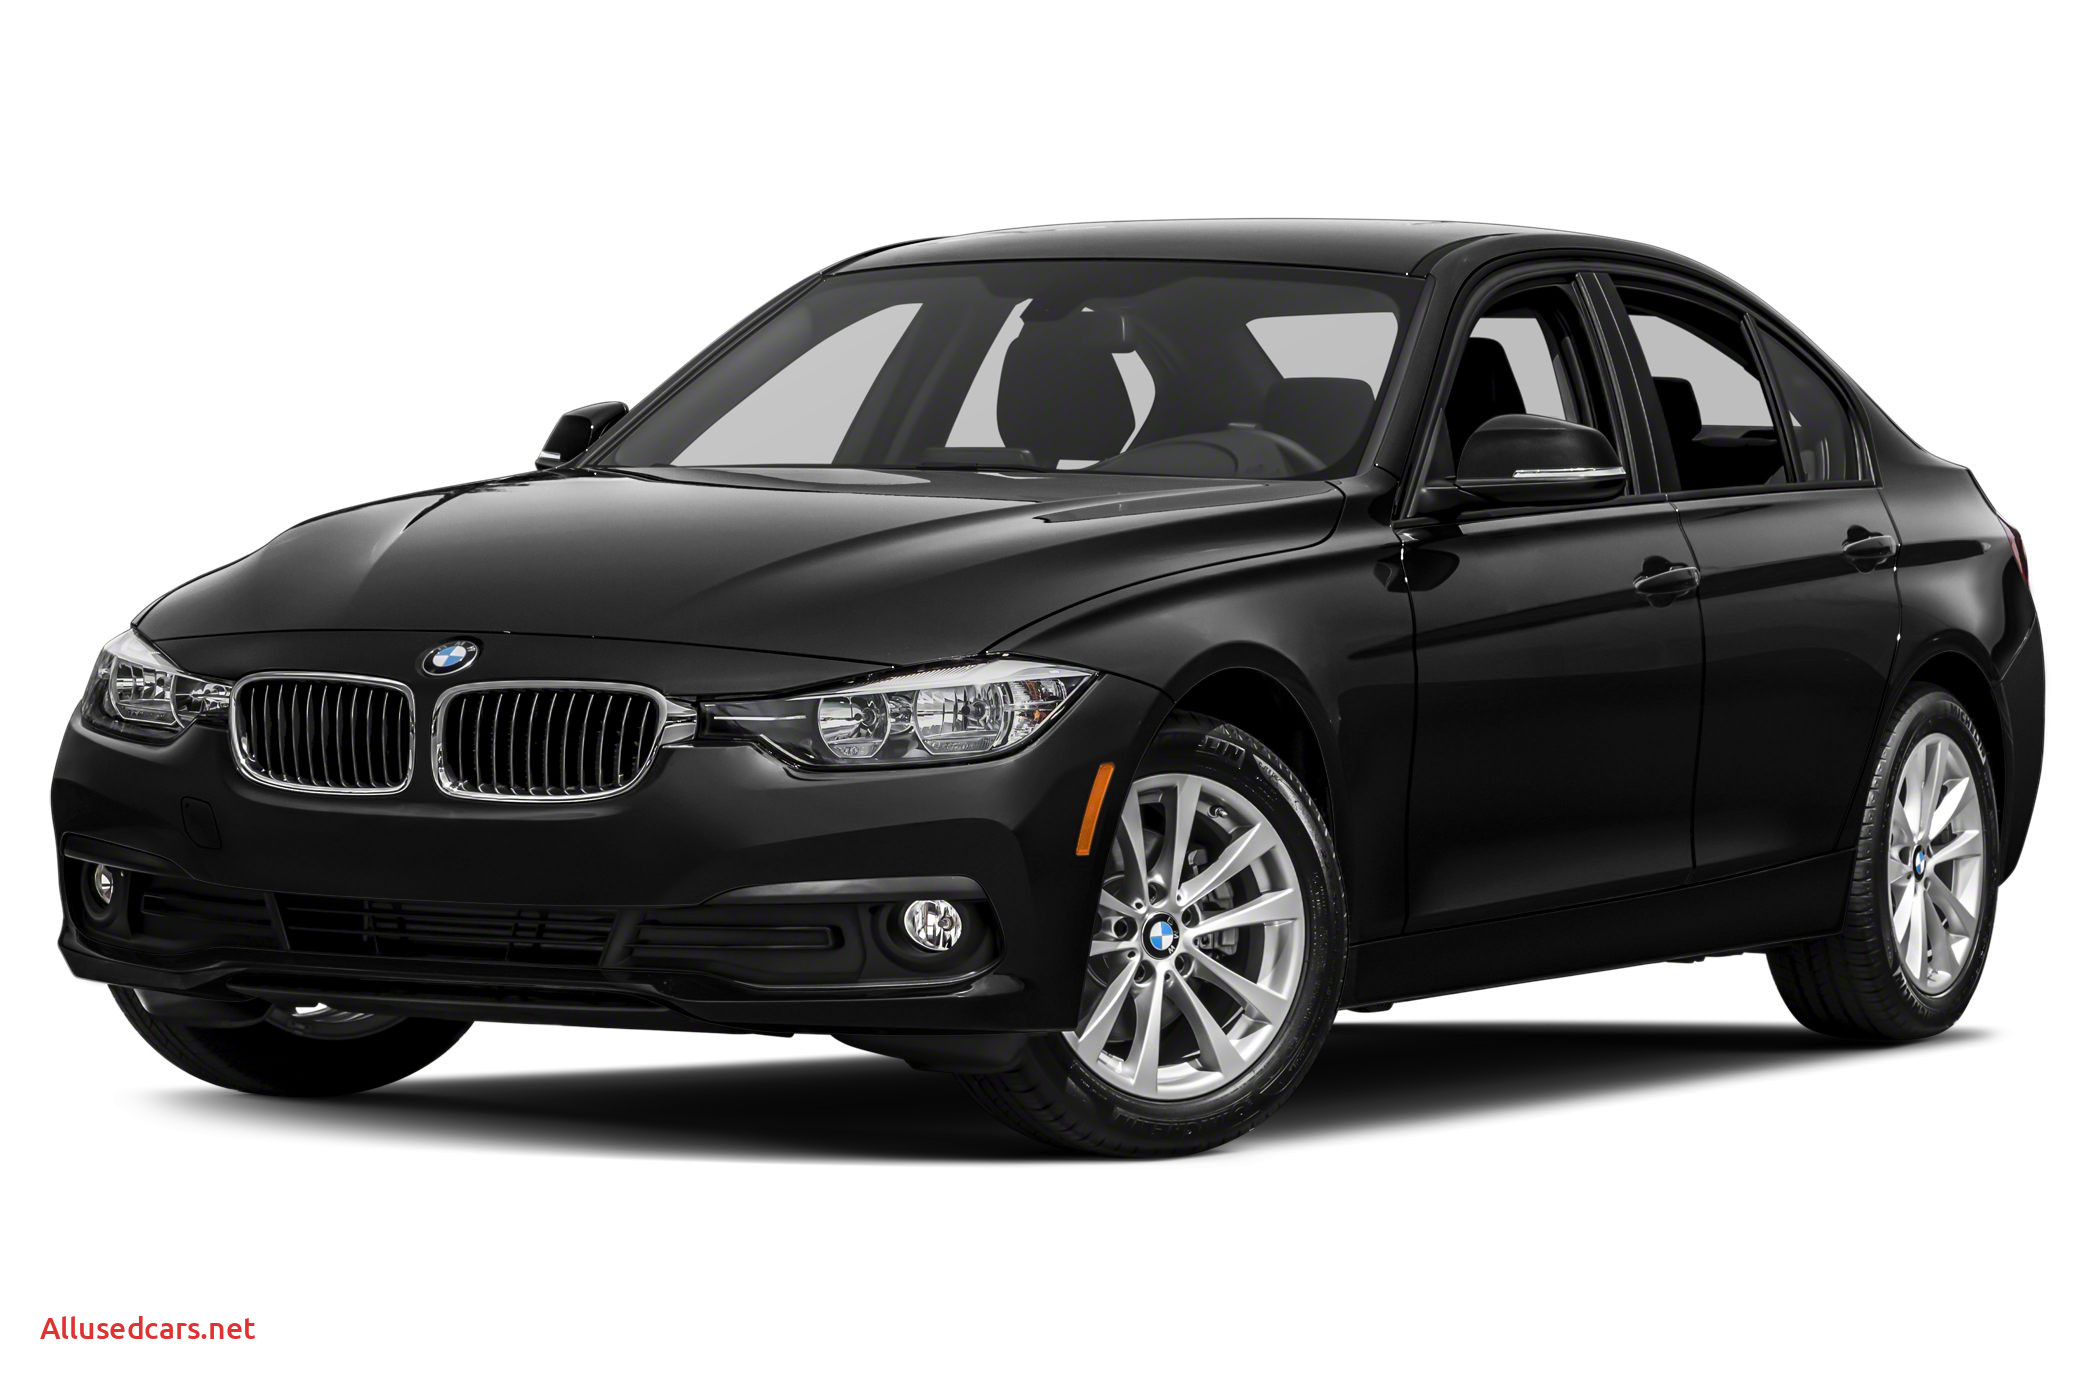 Bmw 320i Price Beautiful 2018 Bmw 320 Owner Reviews and Ratings